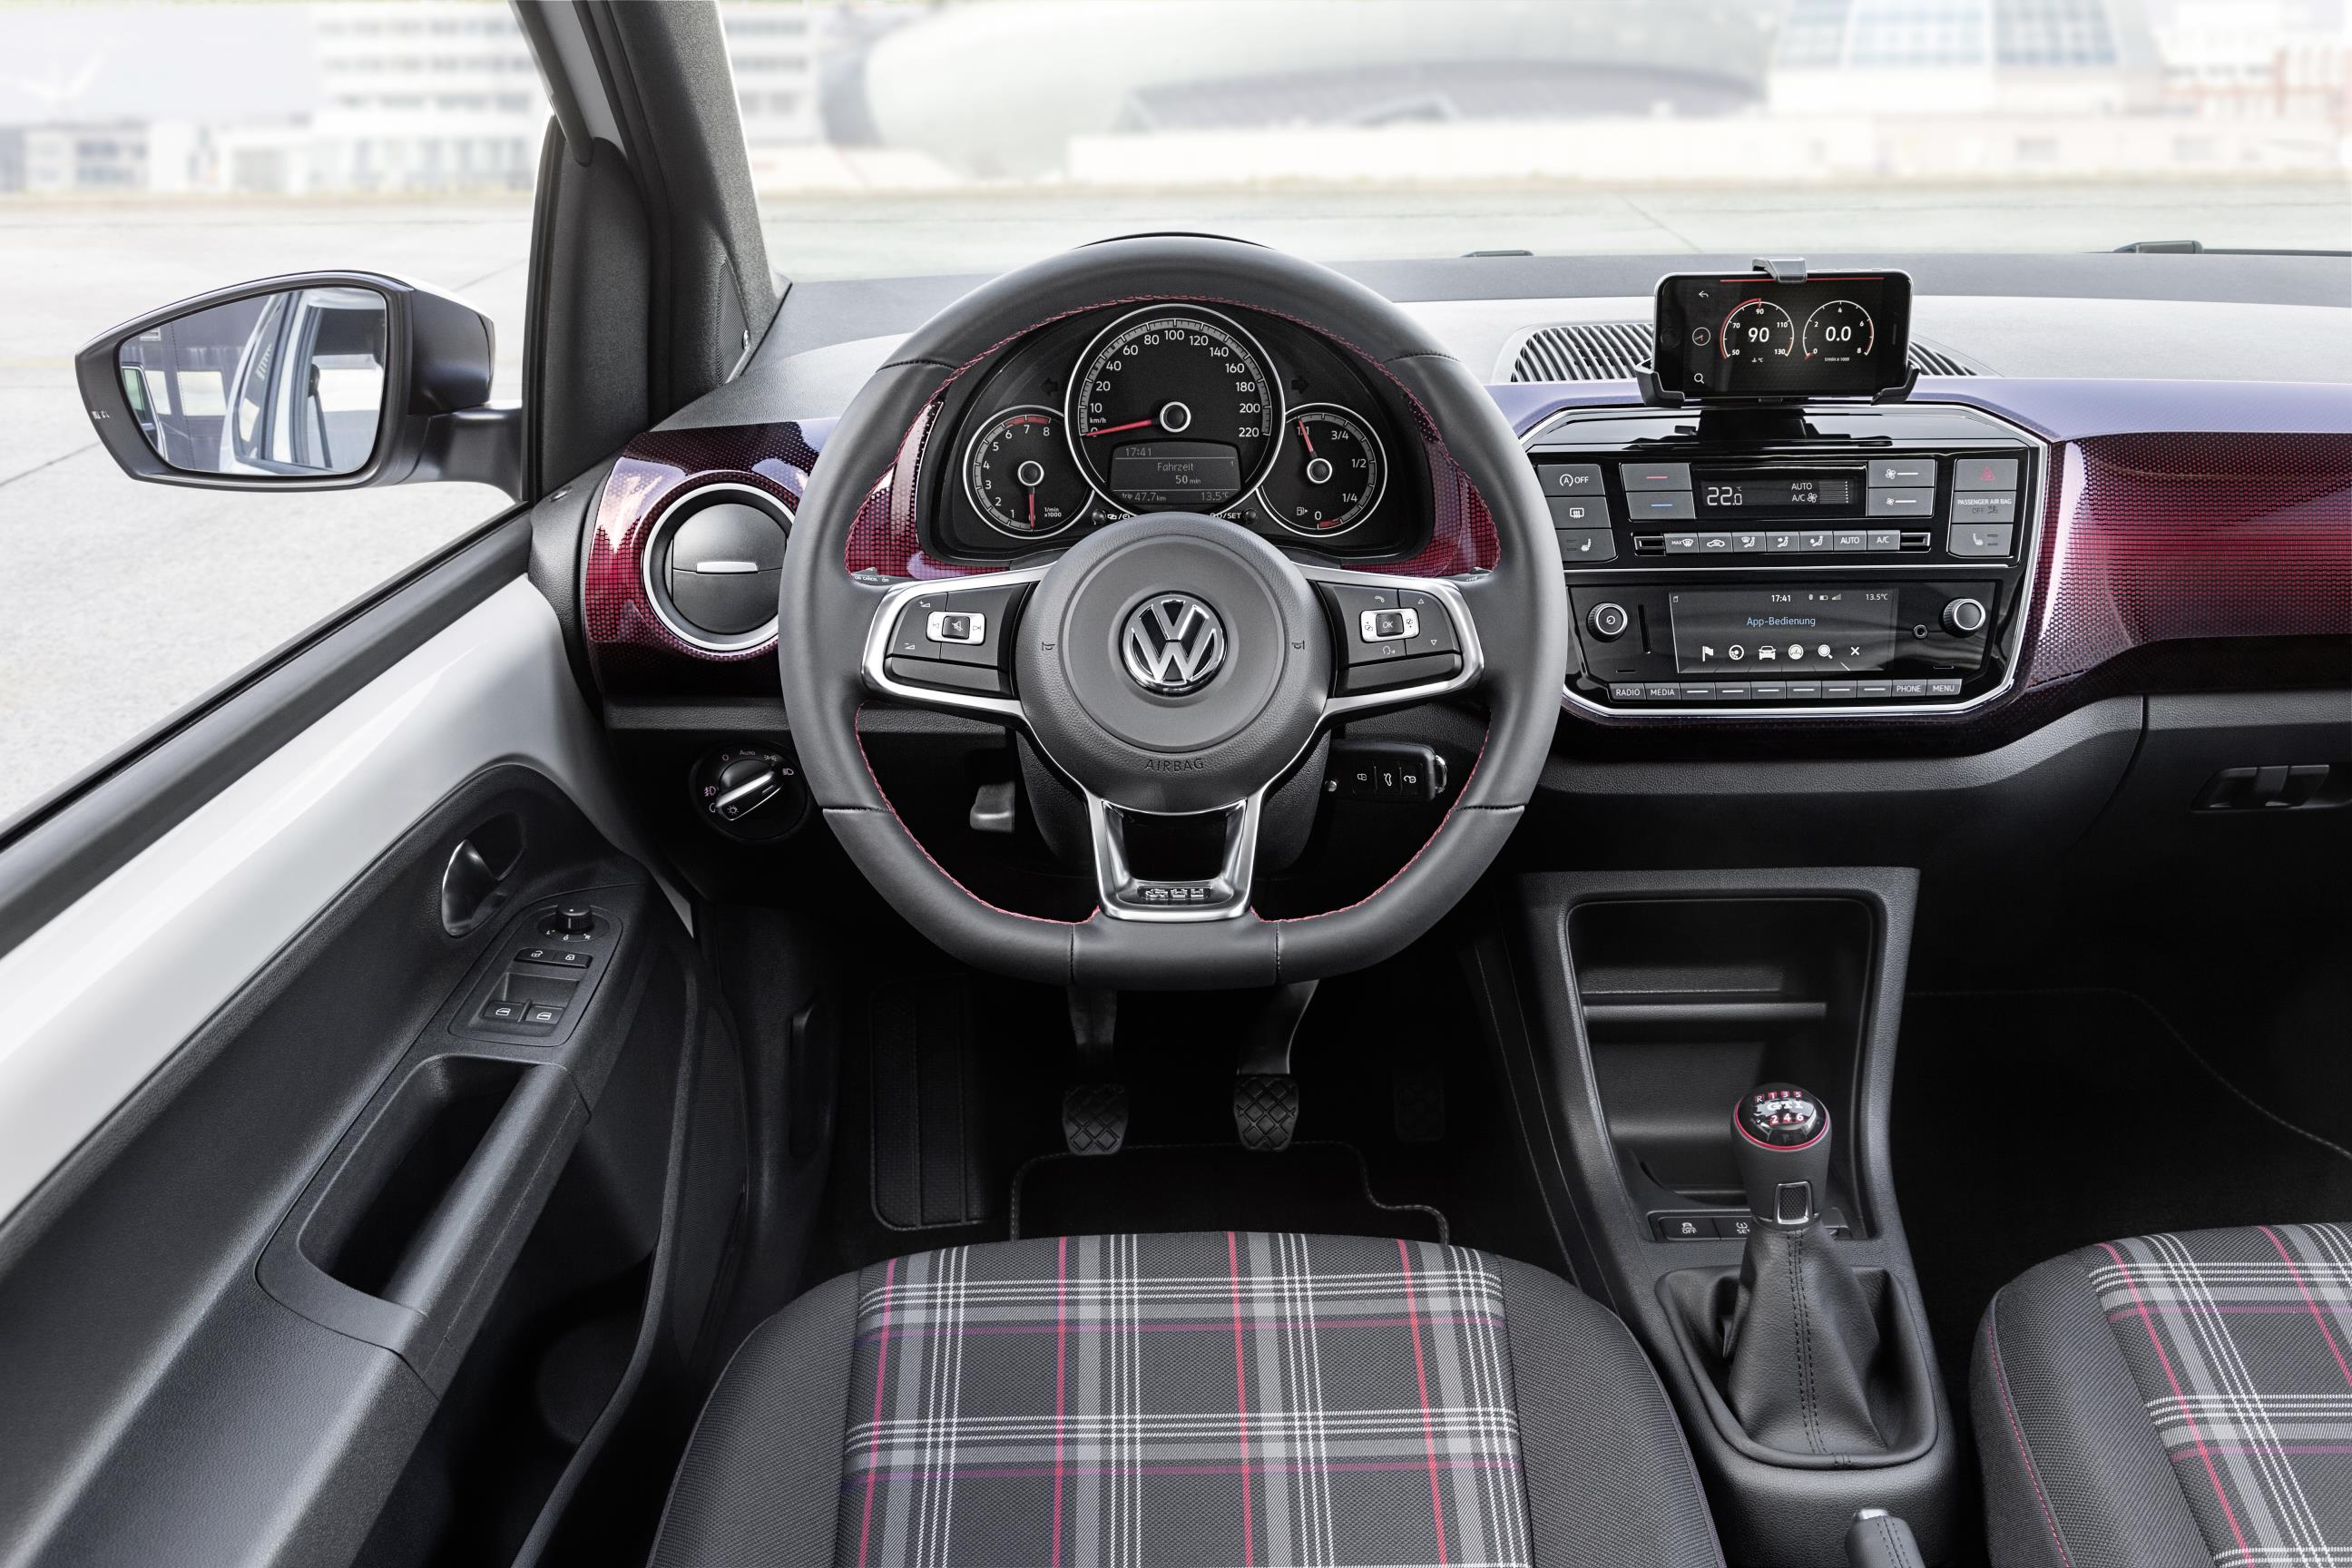 New Volkswagen up! GTI interior with purple check